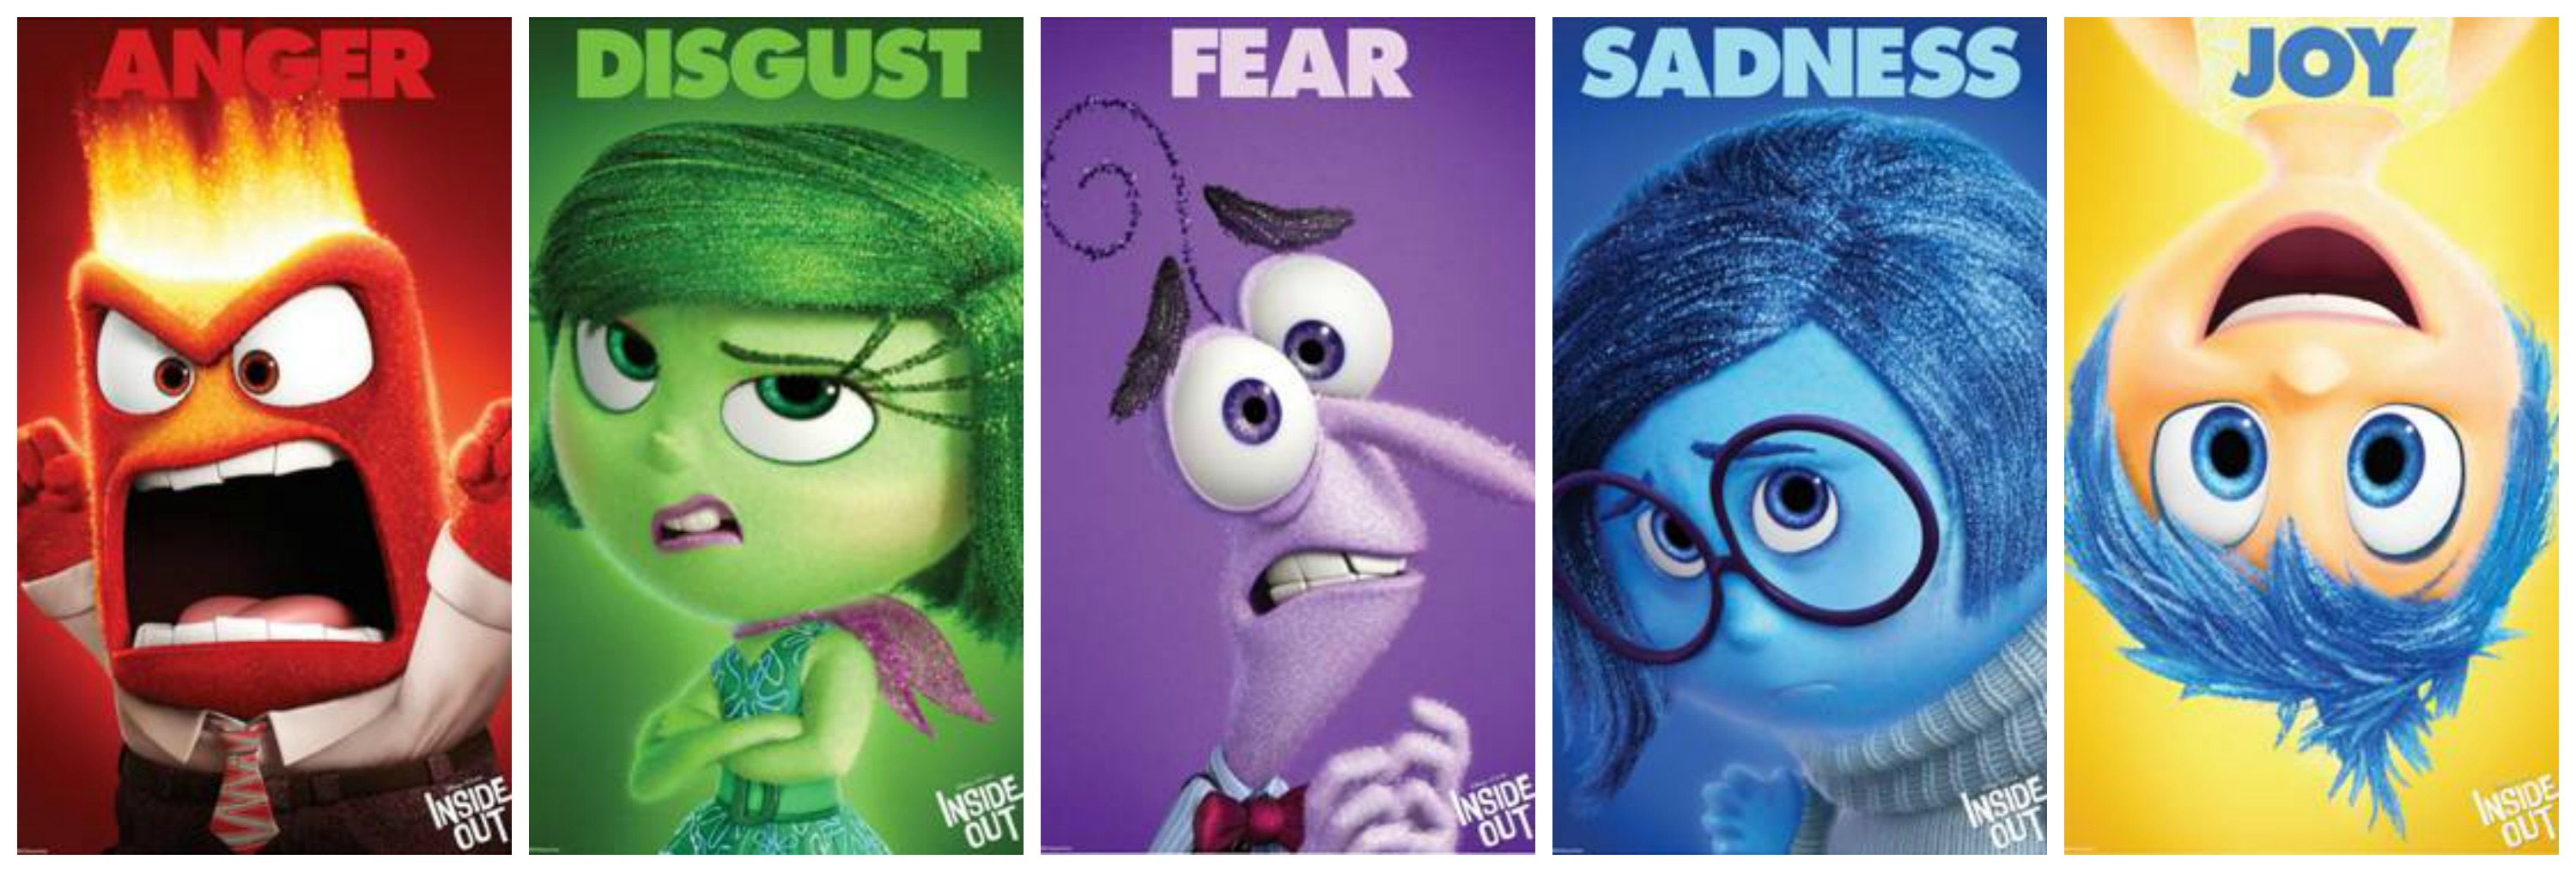 New Disney Pixar Inside Out Trailer